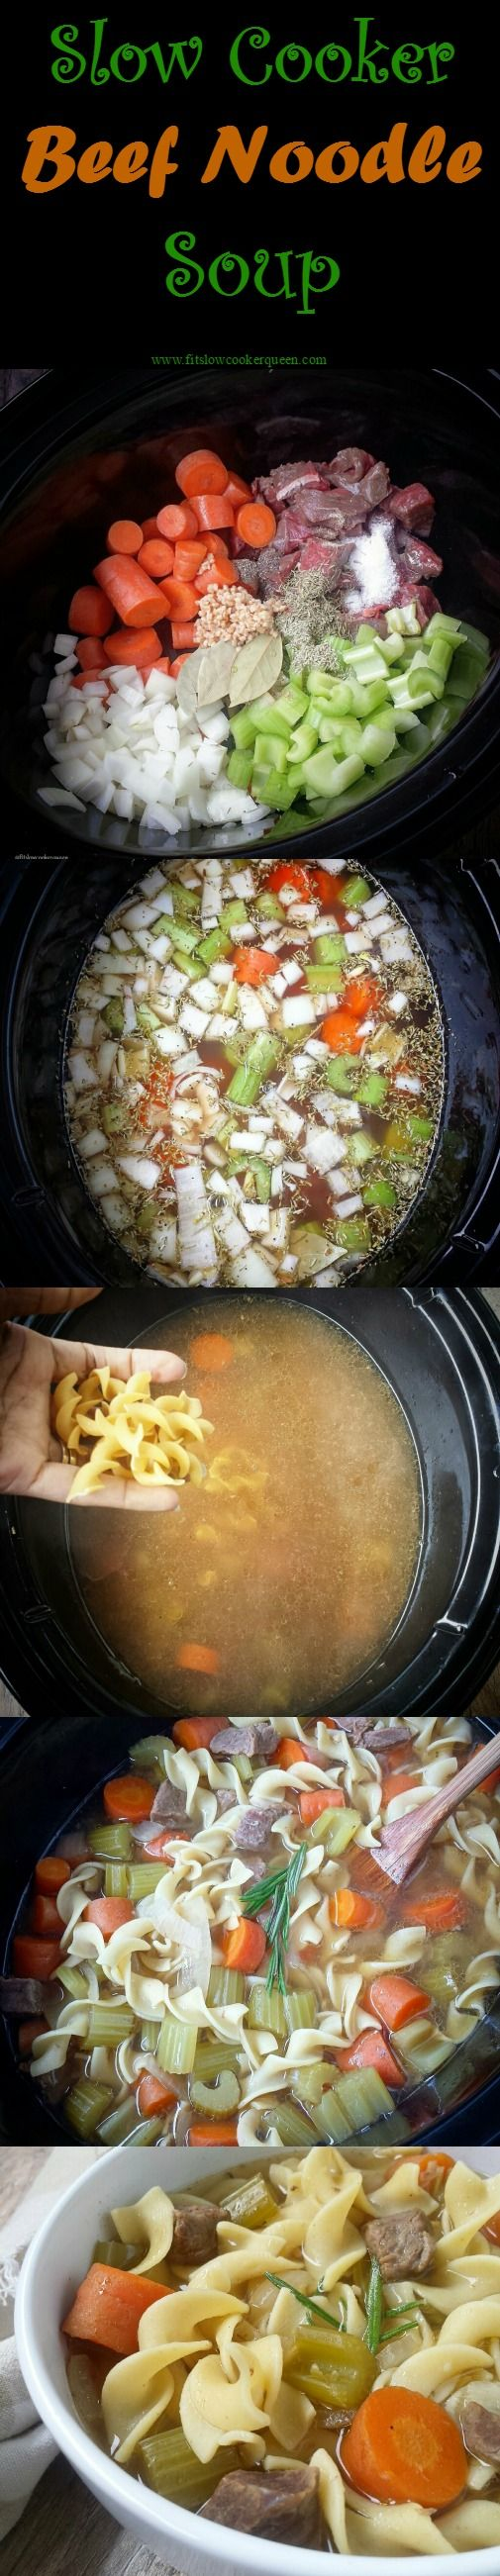 Crockpot / Slow Cooker comfort food - This classic noodle soup recipe made with beef stew meat is the ultimate comfort meal. Cooked in the slow cooker, this is convenient too!